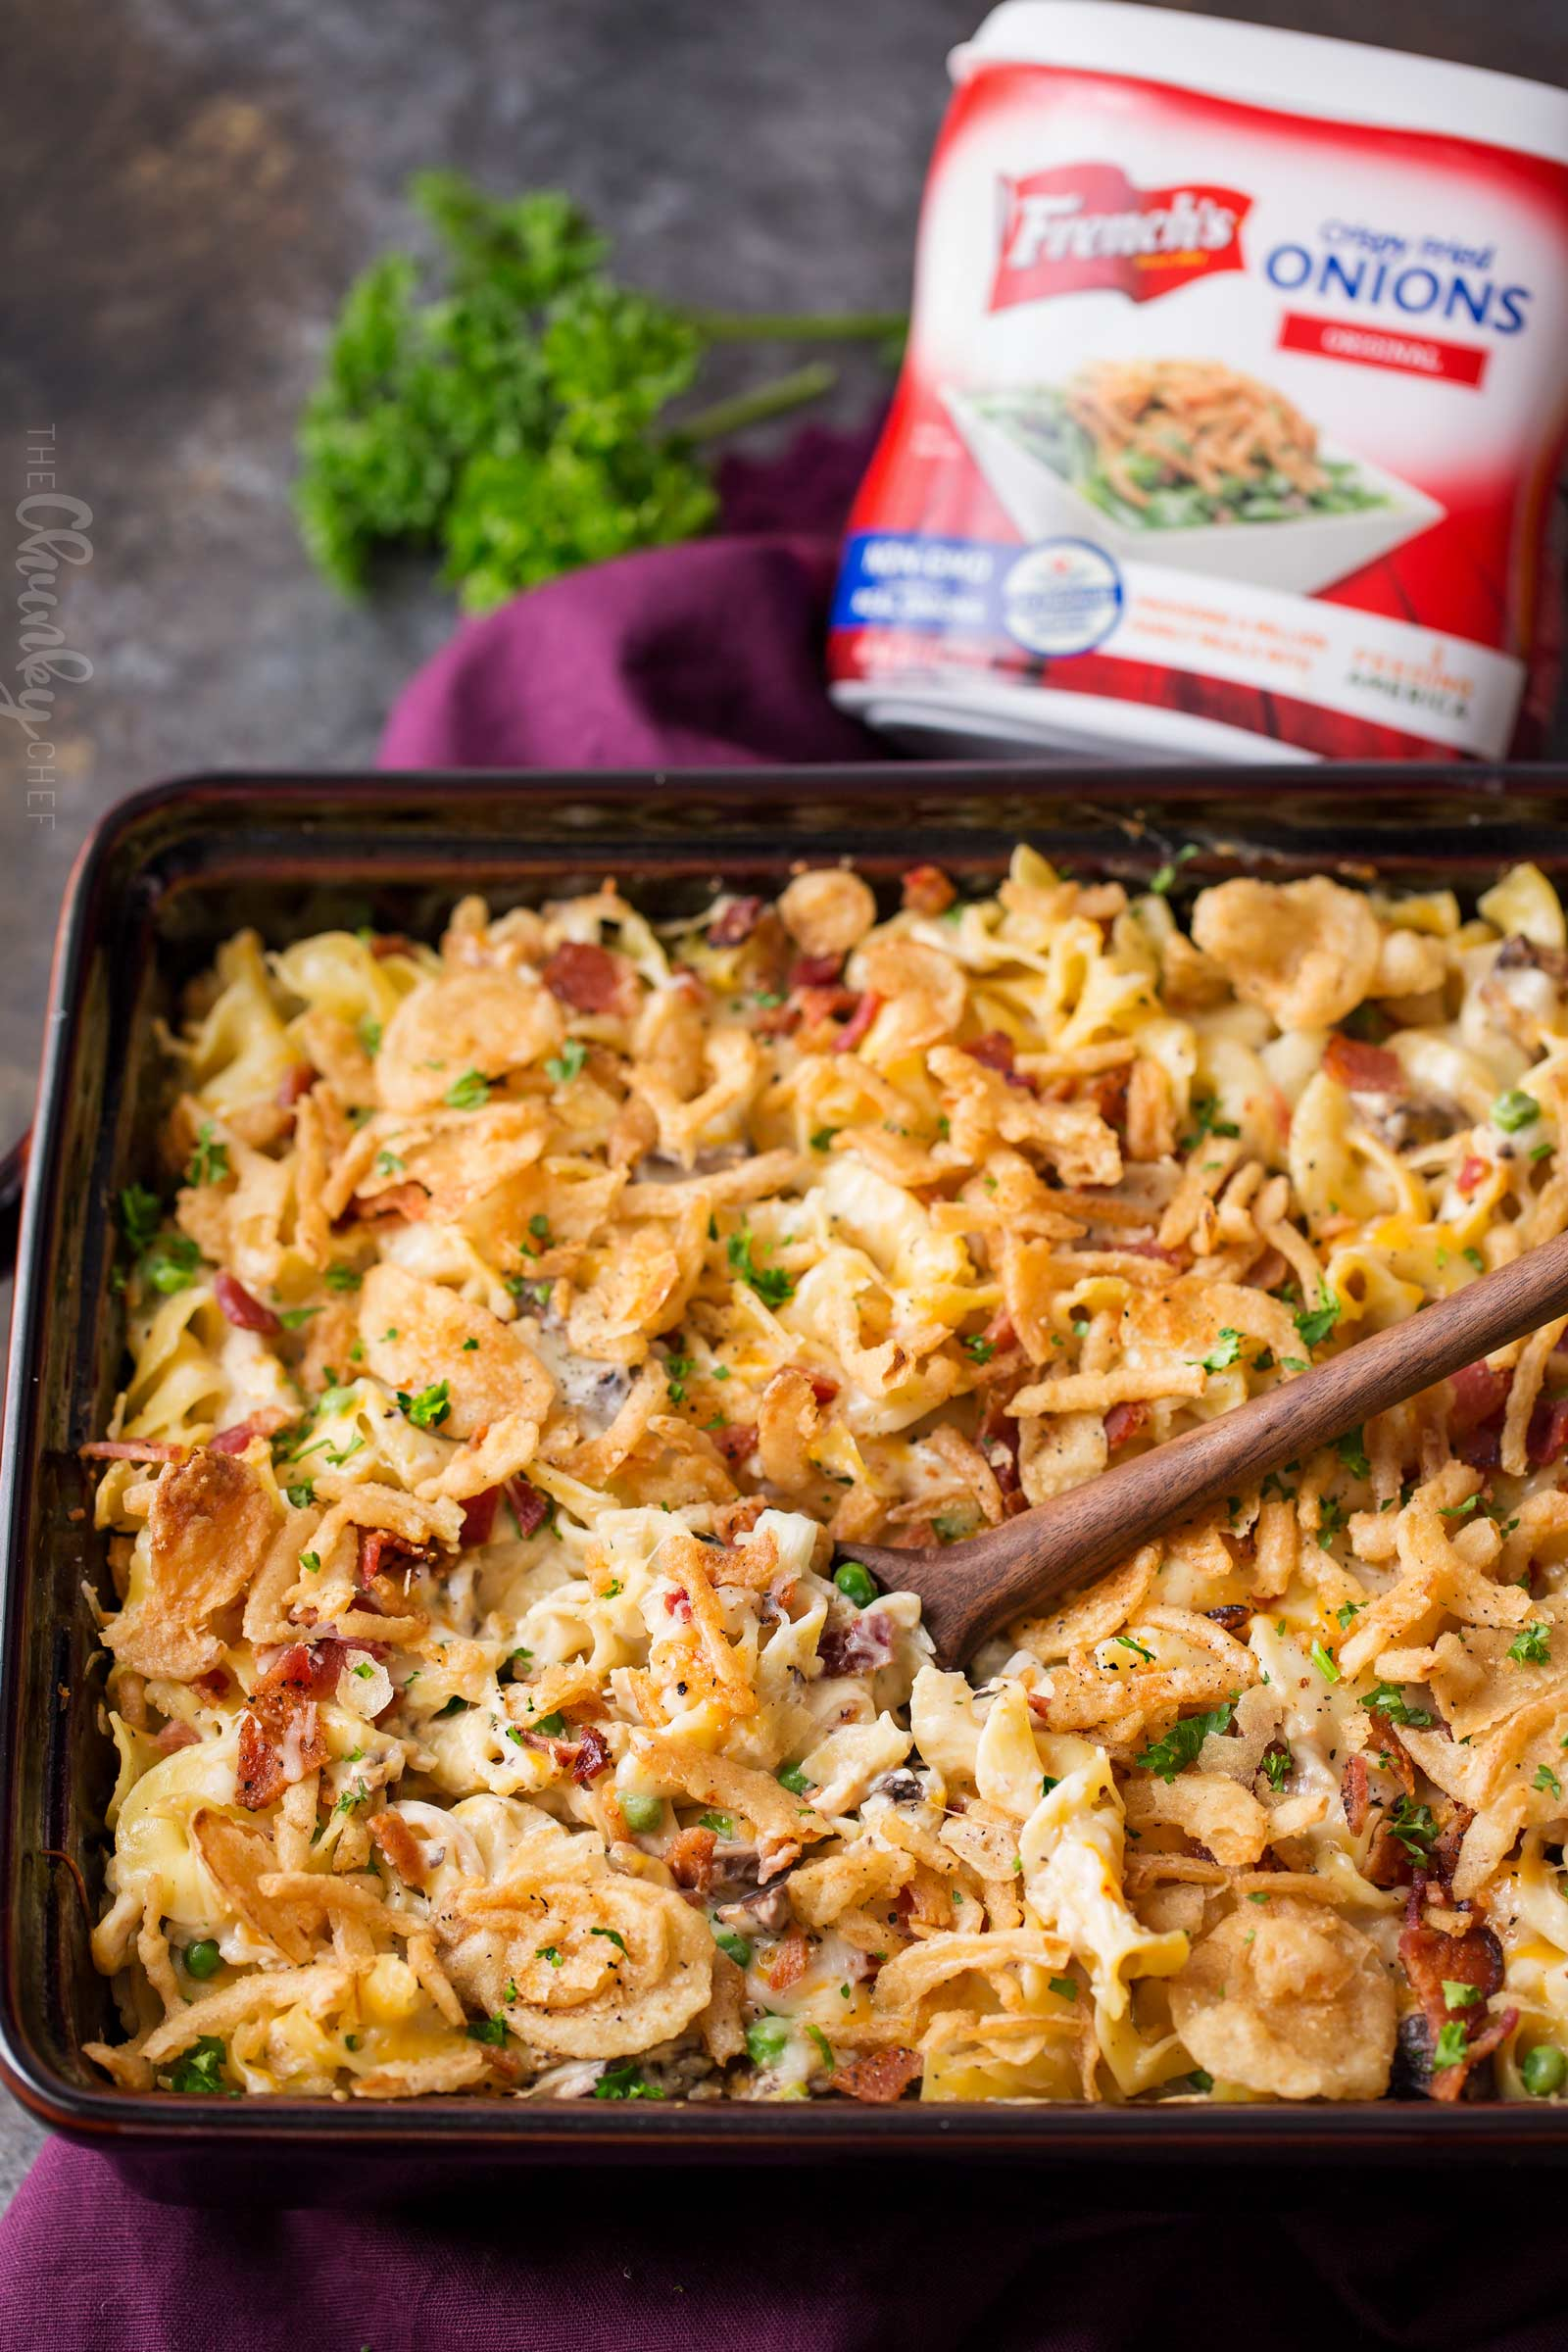 Loaded Cheesy Chicken Noodle Casserole | This chicken noodle casserole has great classic chicken noodle flavors, with some added flavors like bacon, mushrooms, and a crunchy fried onion topping!  Great for a make-ahead meal, this casserole will be family favorite! | The Chunky Chef | #chickennoodle #chickencasserole #casserole #makeahead #comfortfoods #weeknightmeals